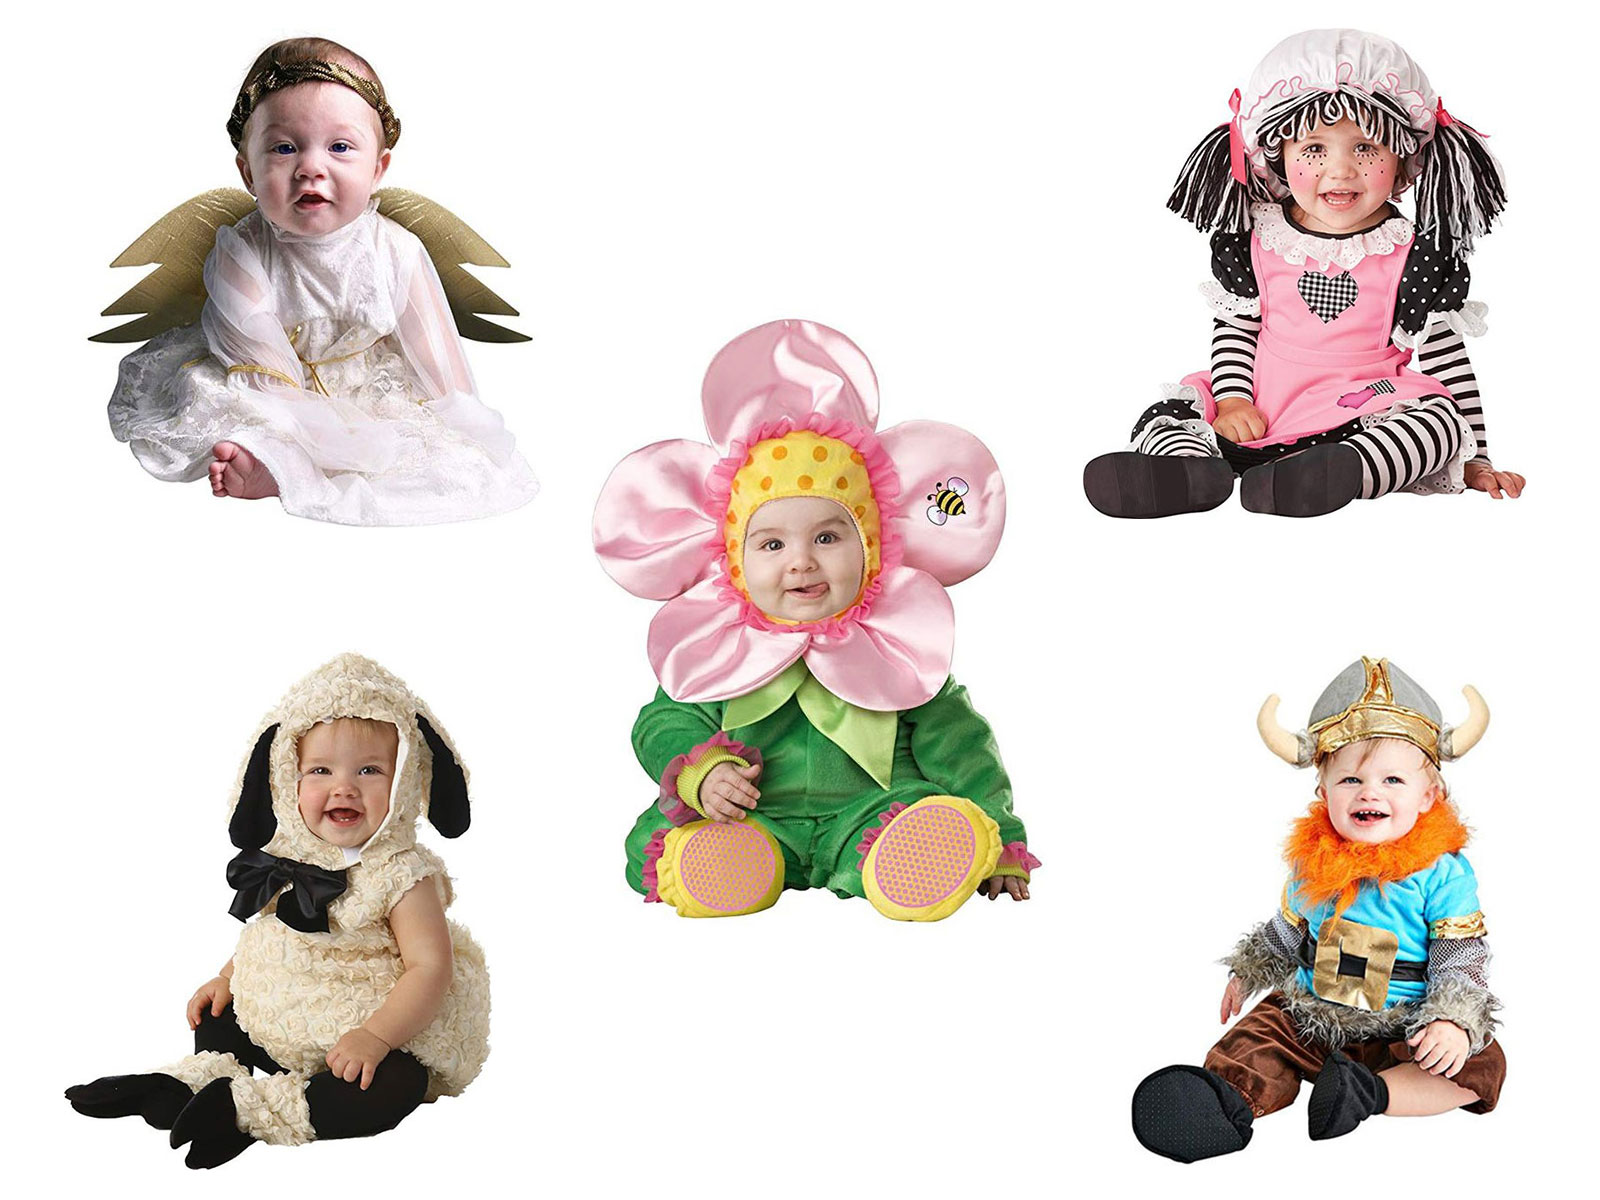 20-Cute-Creative-Halloween-Outfit-Costume-Ideas-For-Toddlers-2019-F